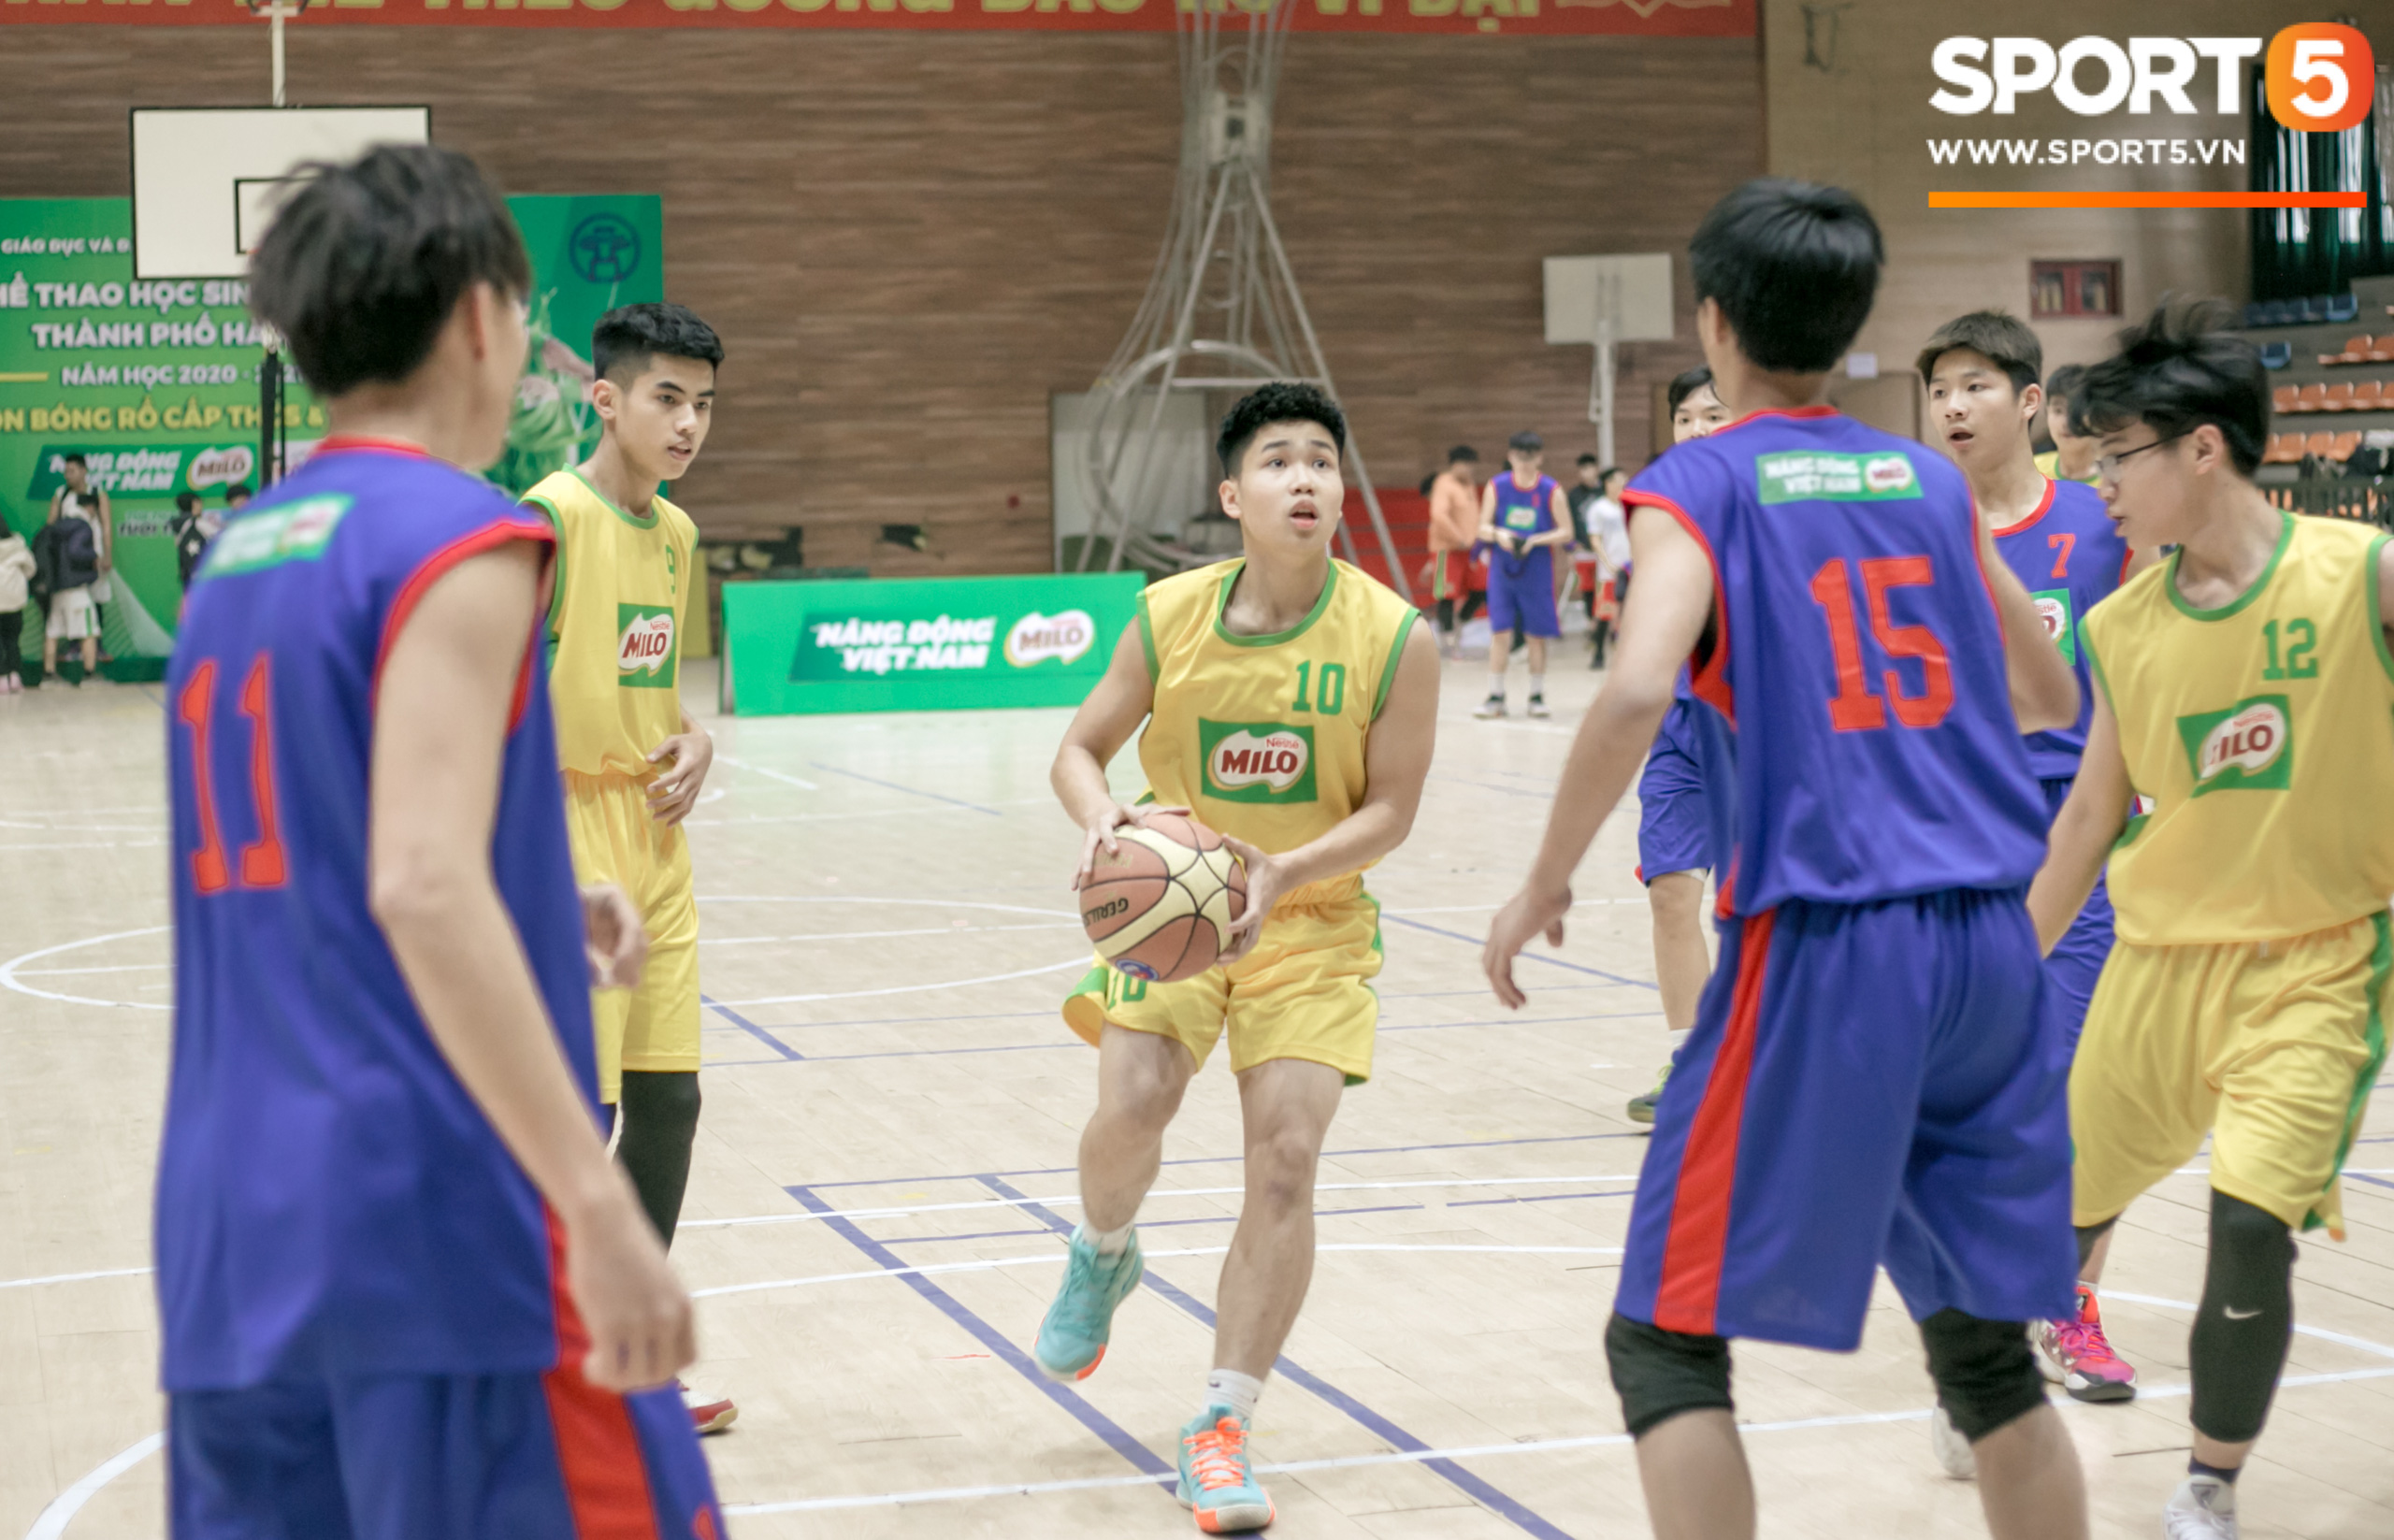 The Xuan Mai High School basketball team caused a fever with great images, after a bad salary, everyone lost their heart - Photo 3.